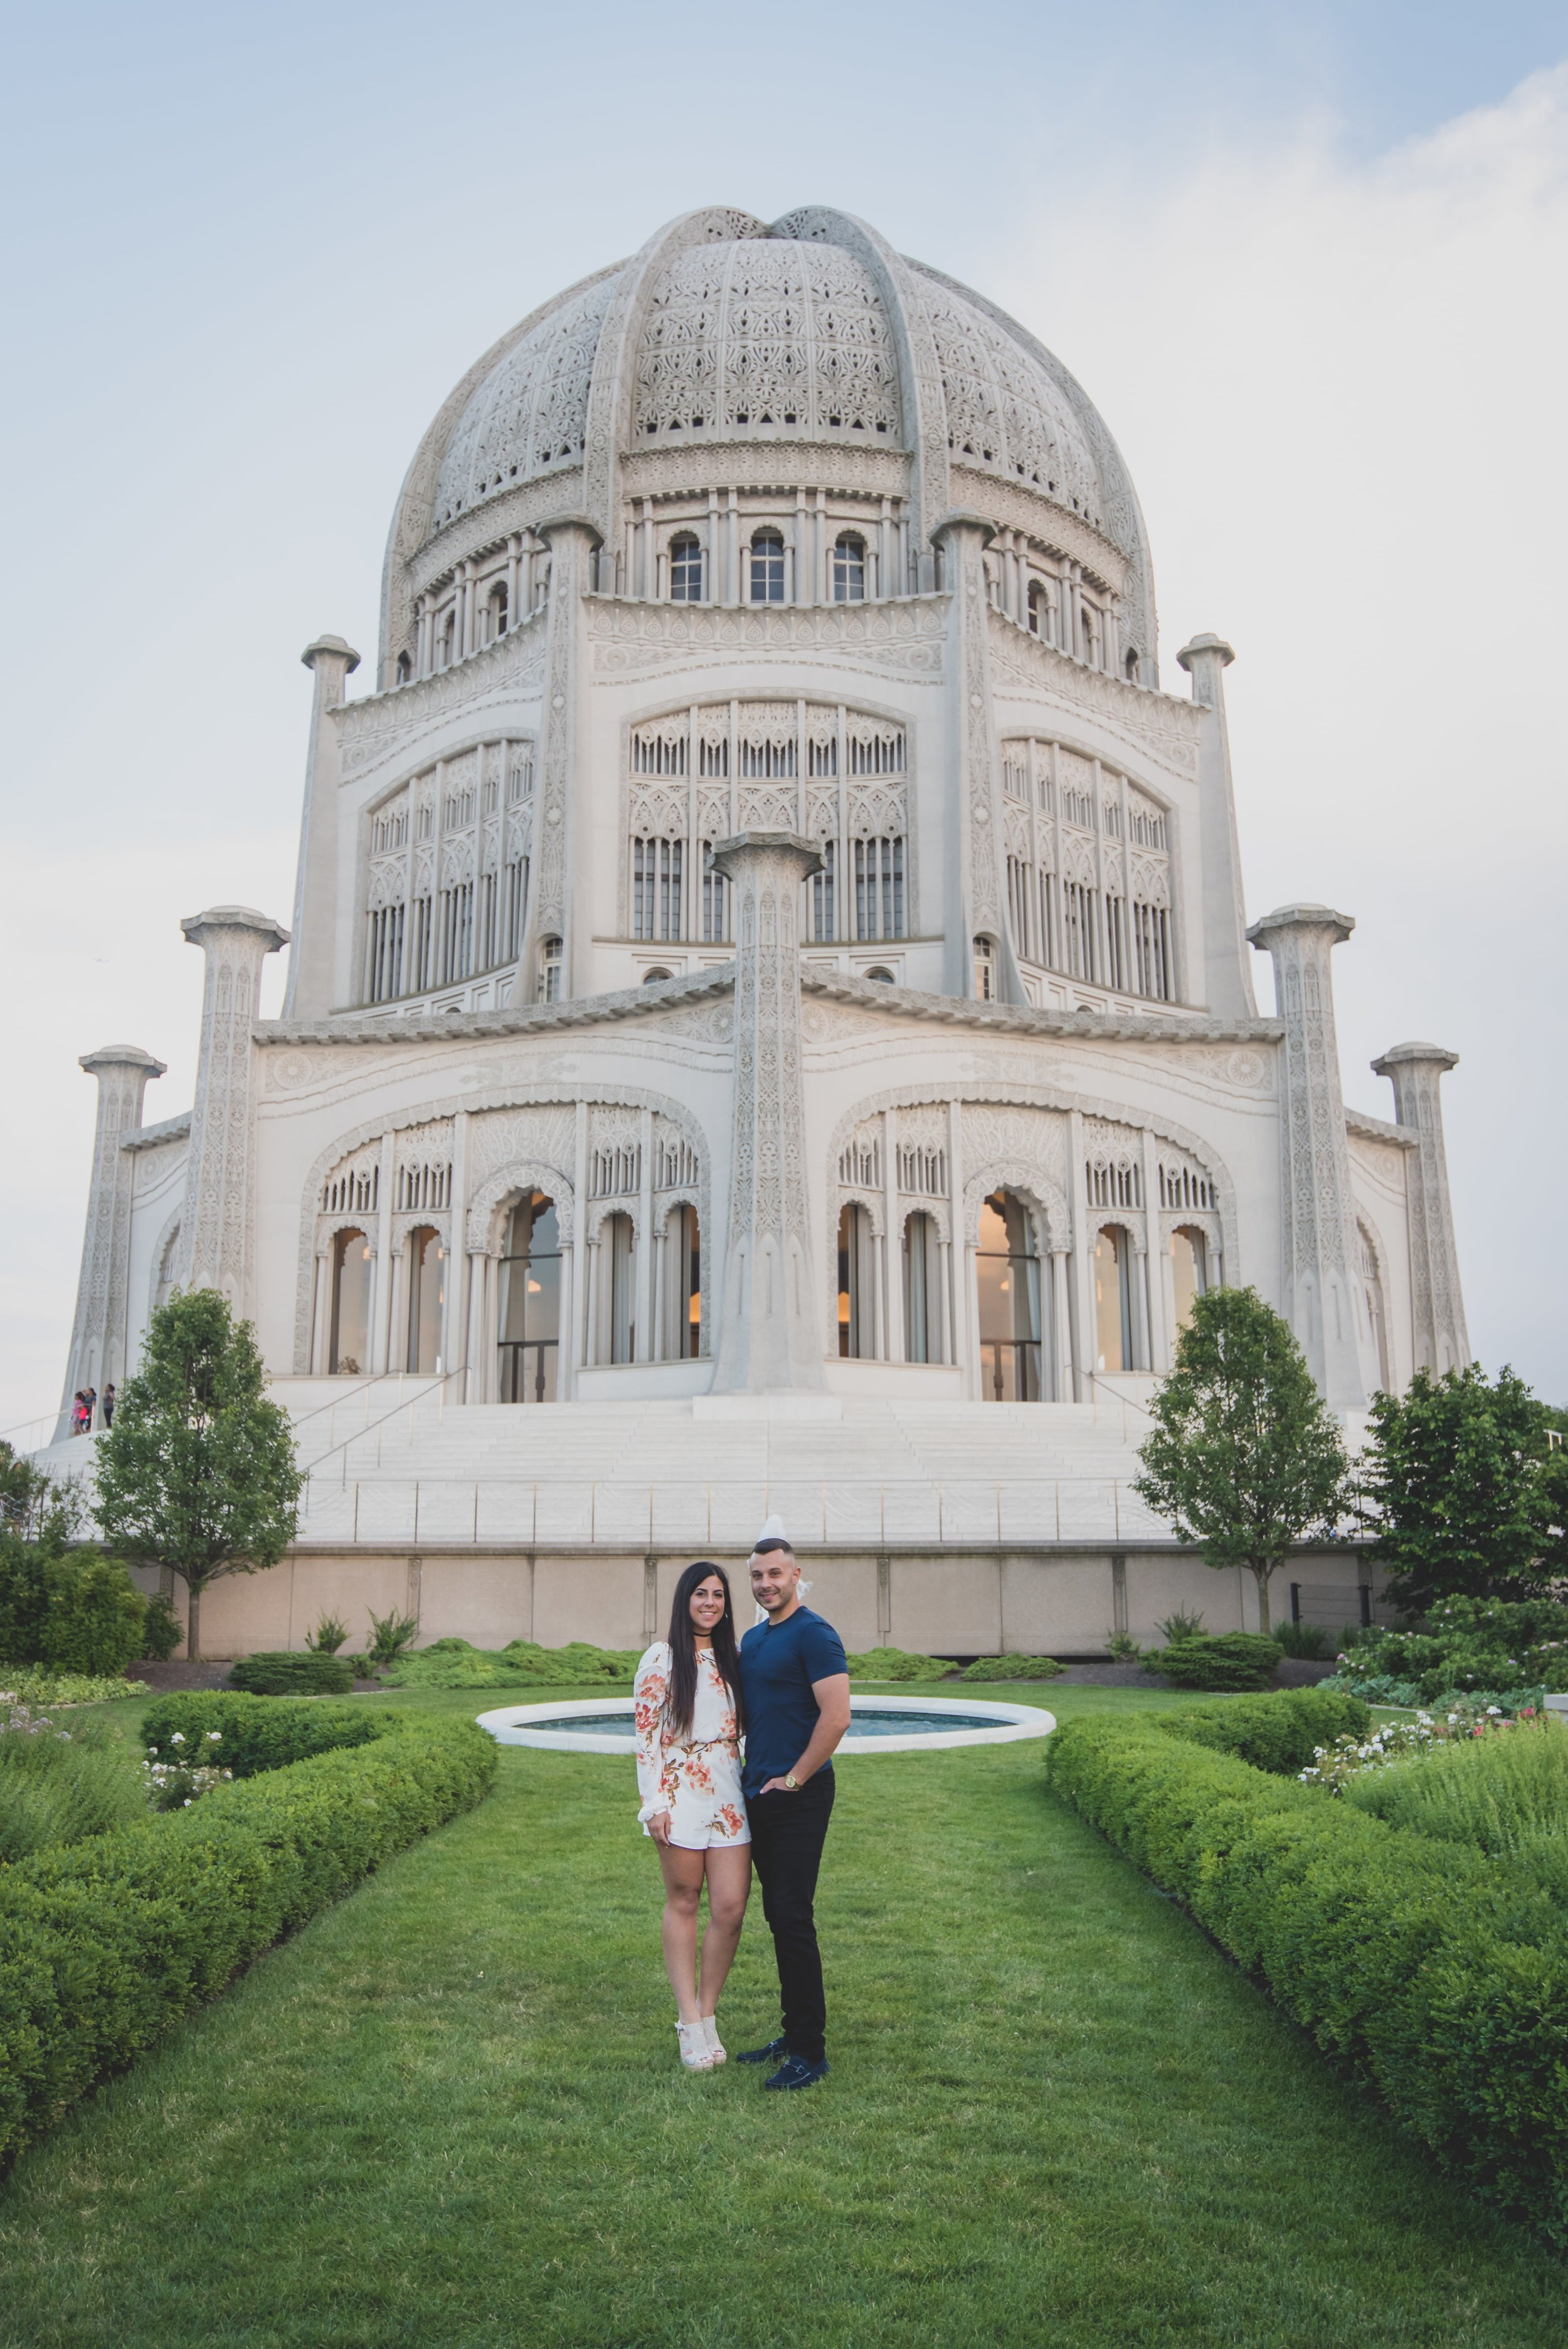 Engaged couple standing on landscaped lawn in front of the baha'i temple.